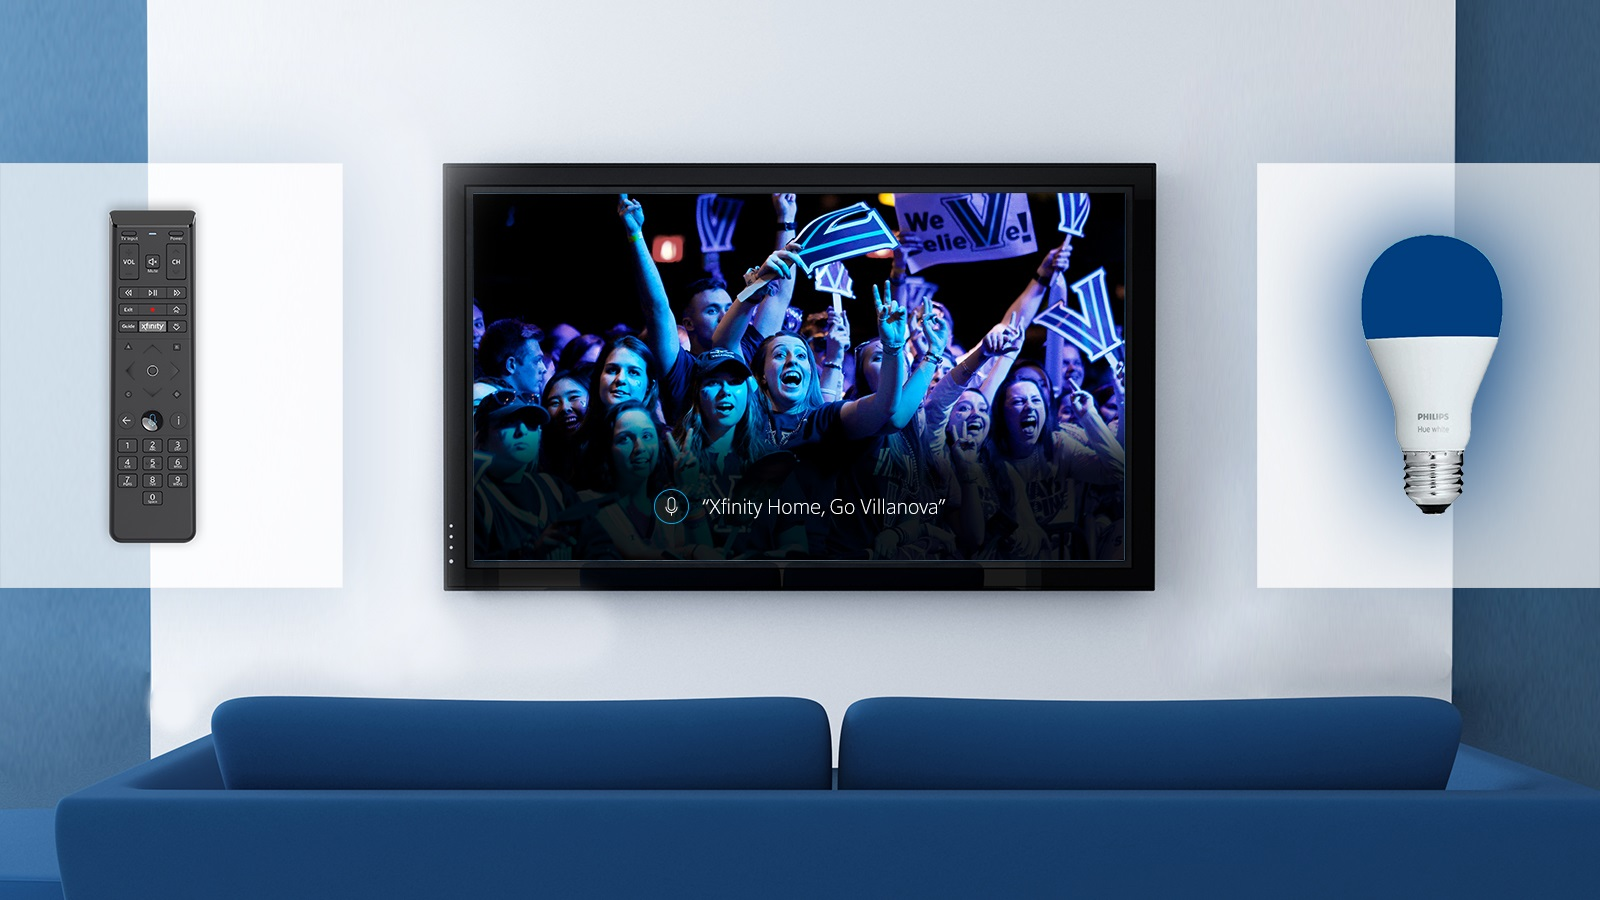 """A TV displays an X1 Voice Remote voice command that reads """"Xfinity Home, Go Villanova""""."""